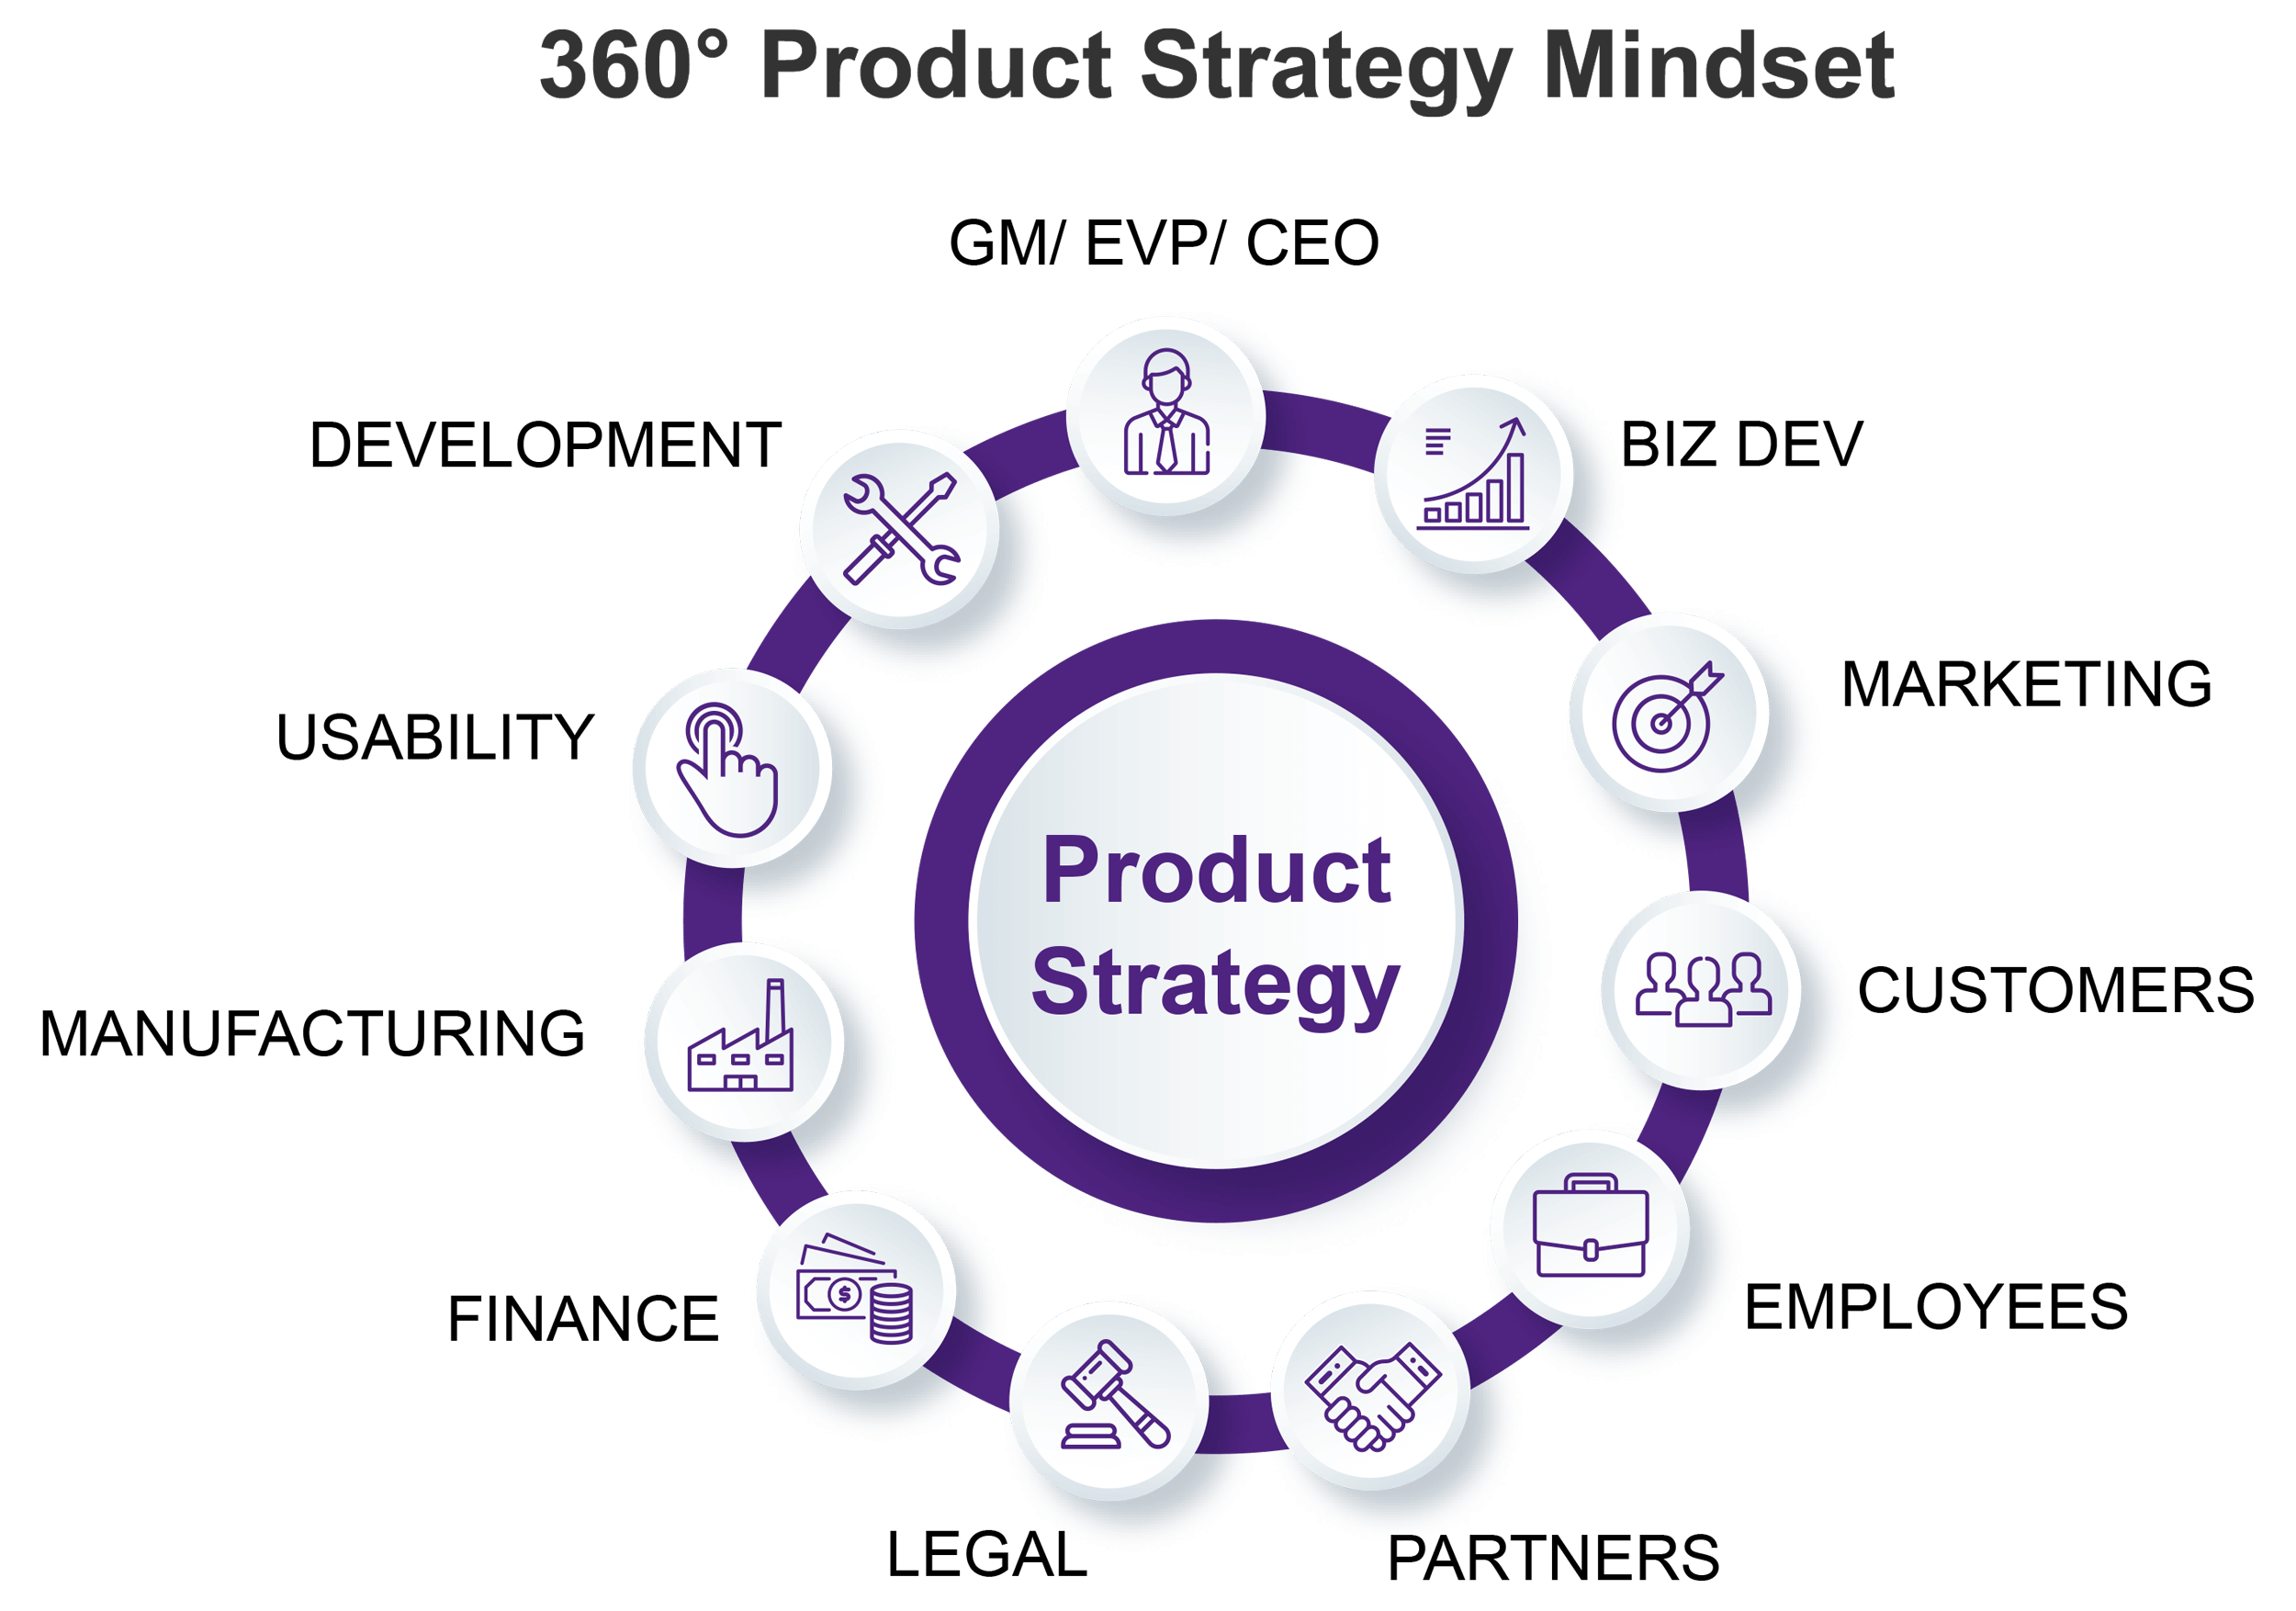 This is an image describing the 360 degree product strategy mindset